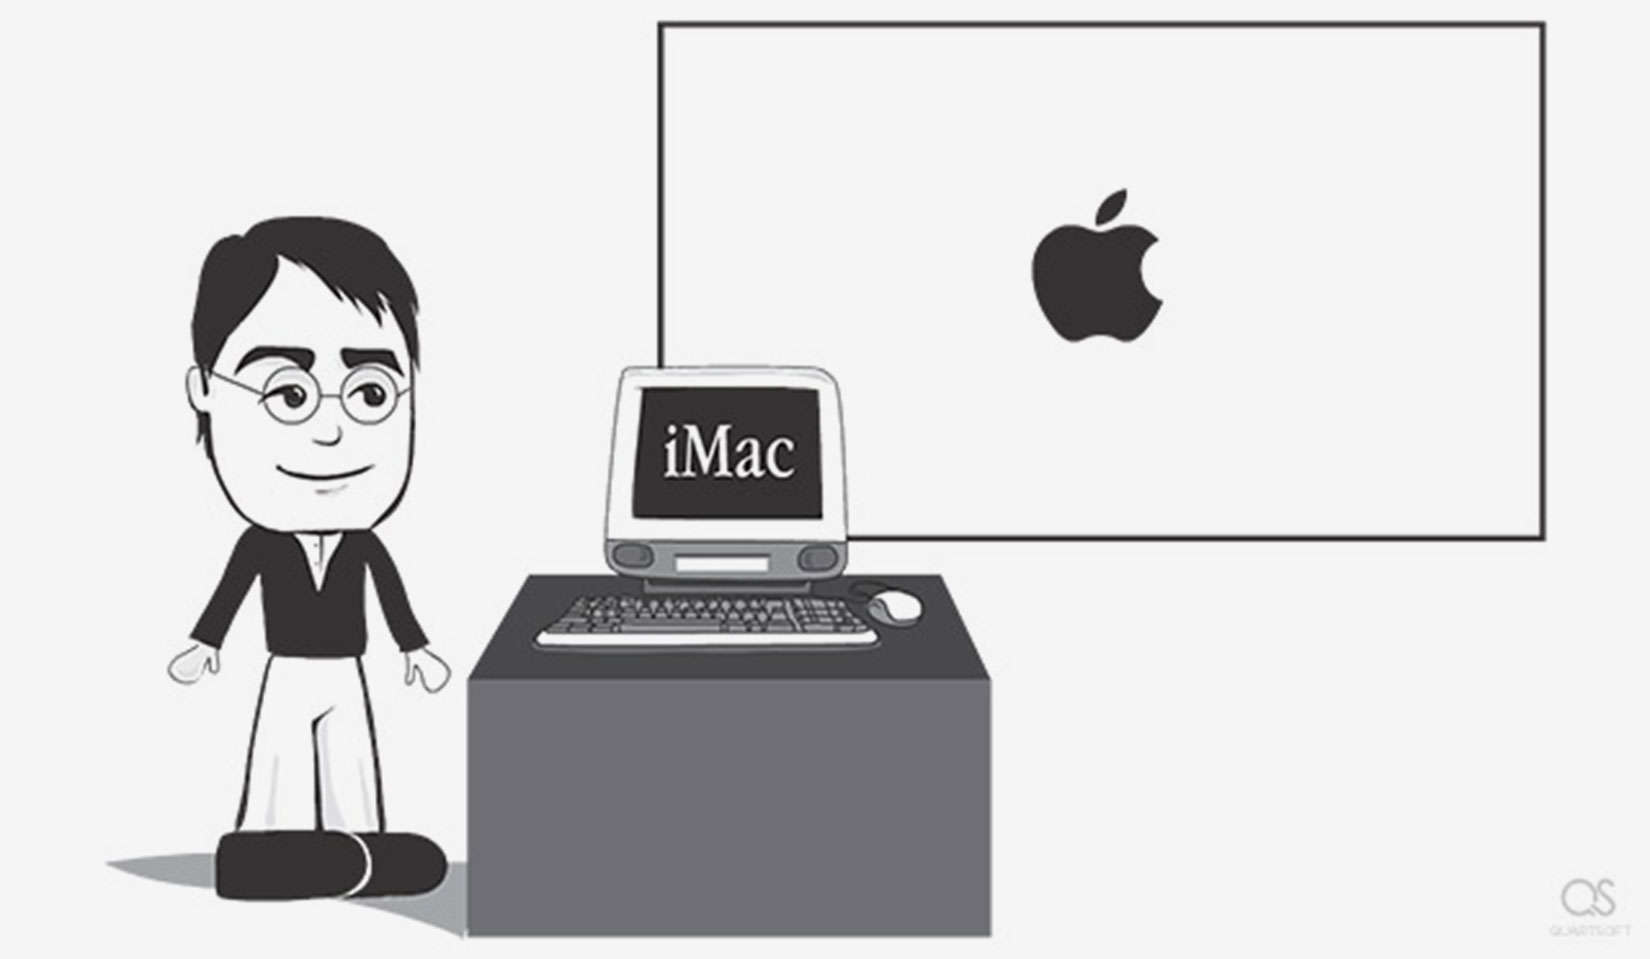 Steven Jobs and the introduction of the iMac.